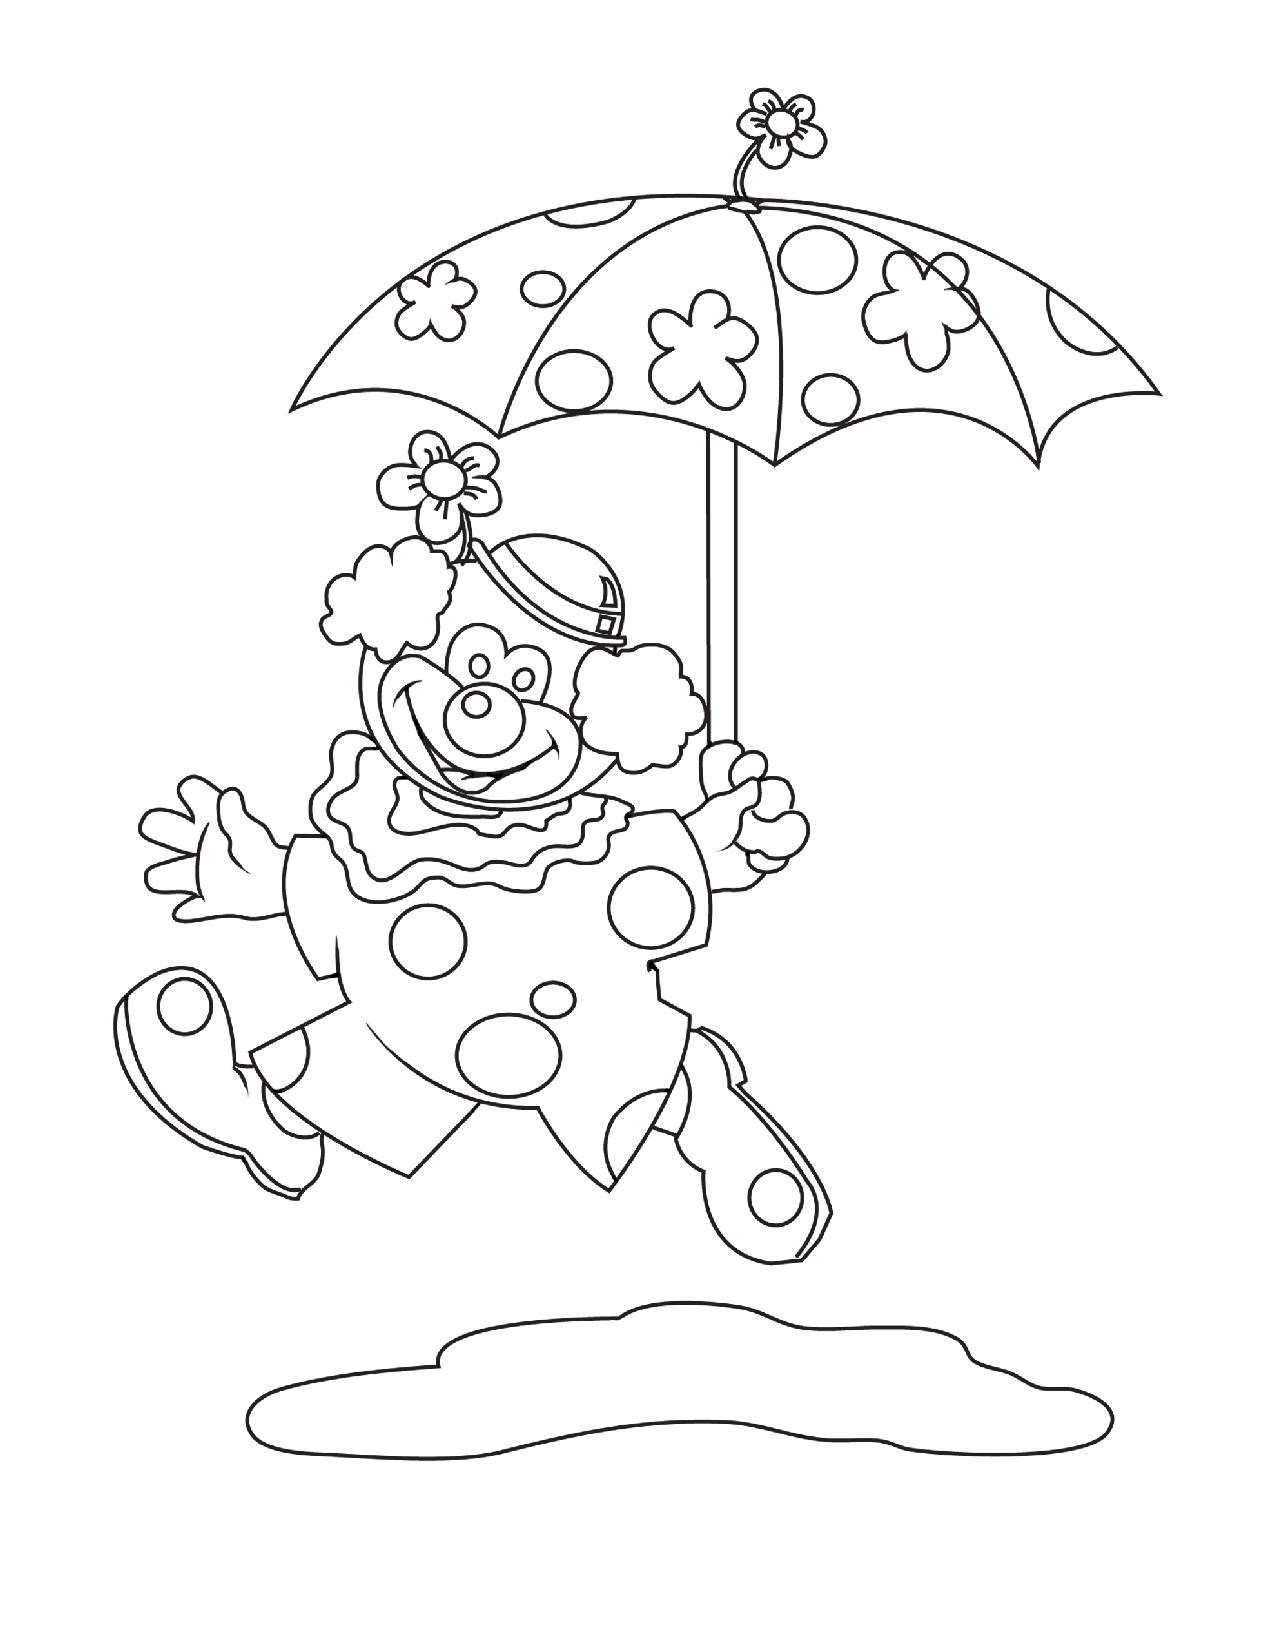 Clown costume coloring pages